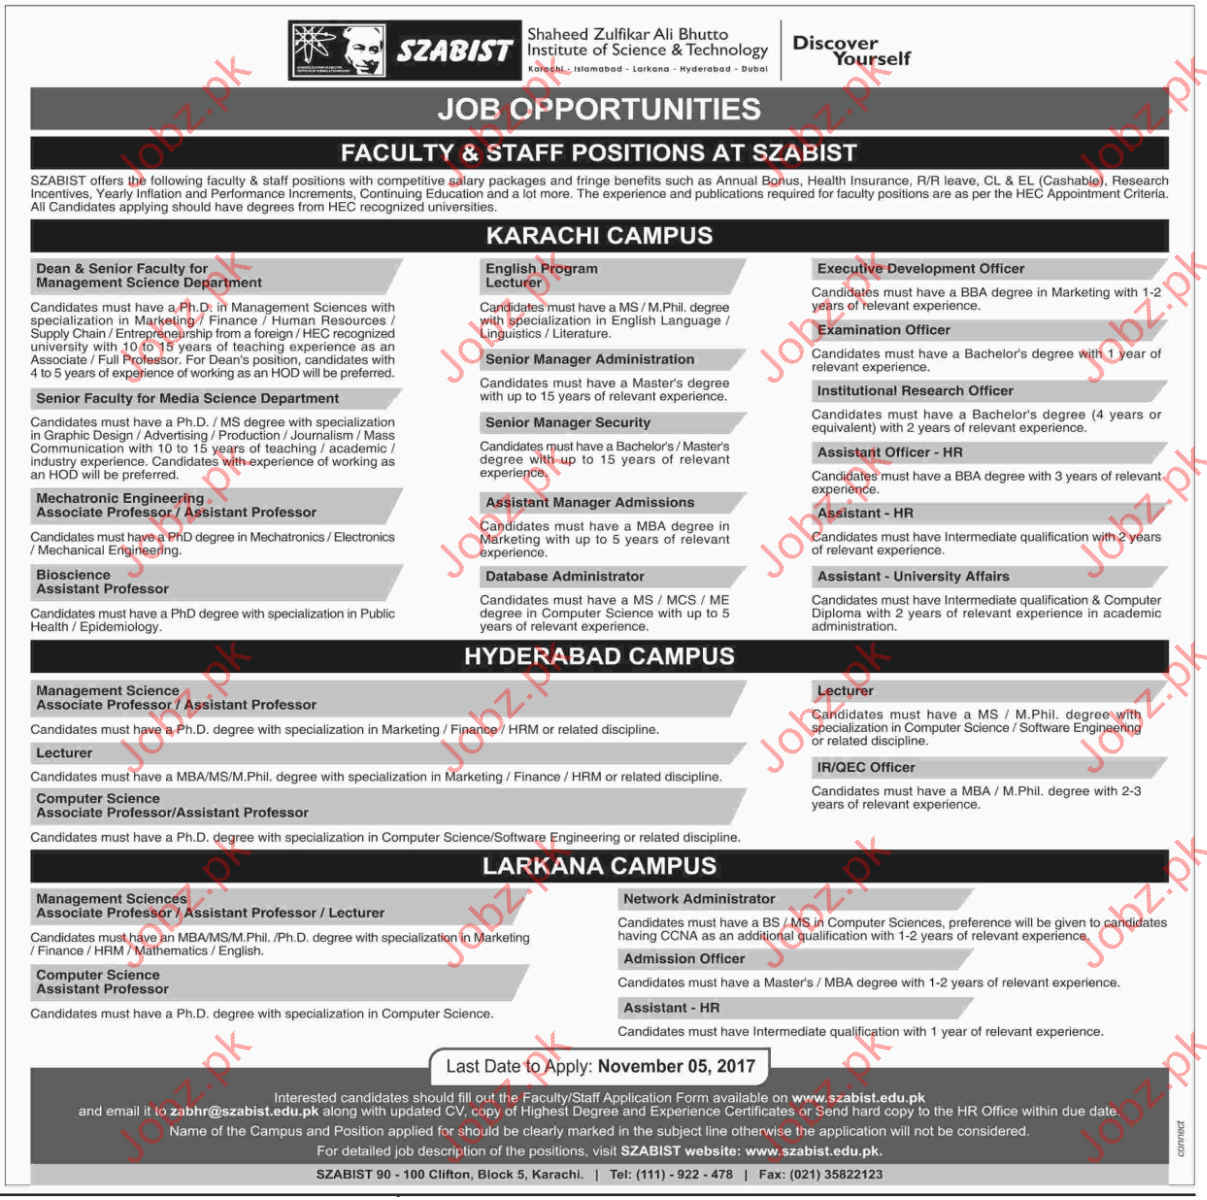 SZABIST Jobs Institute of Science & Technology